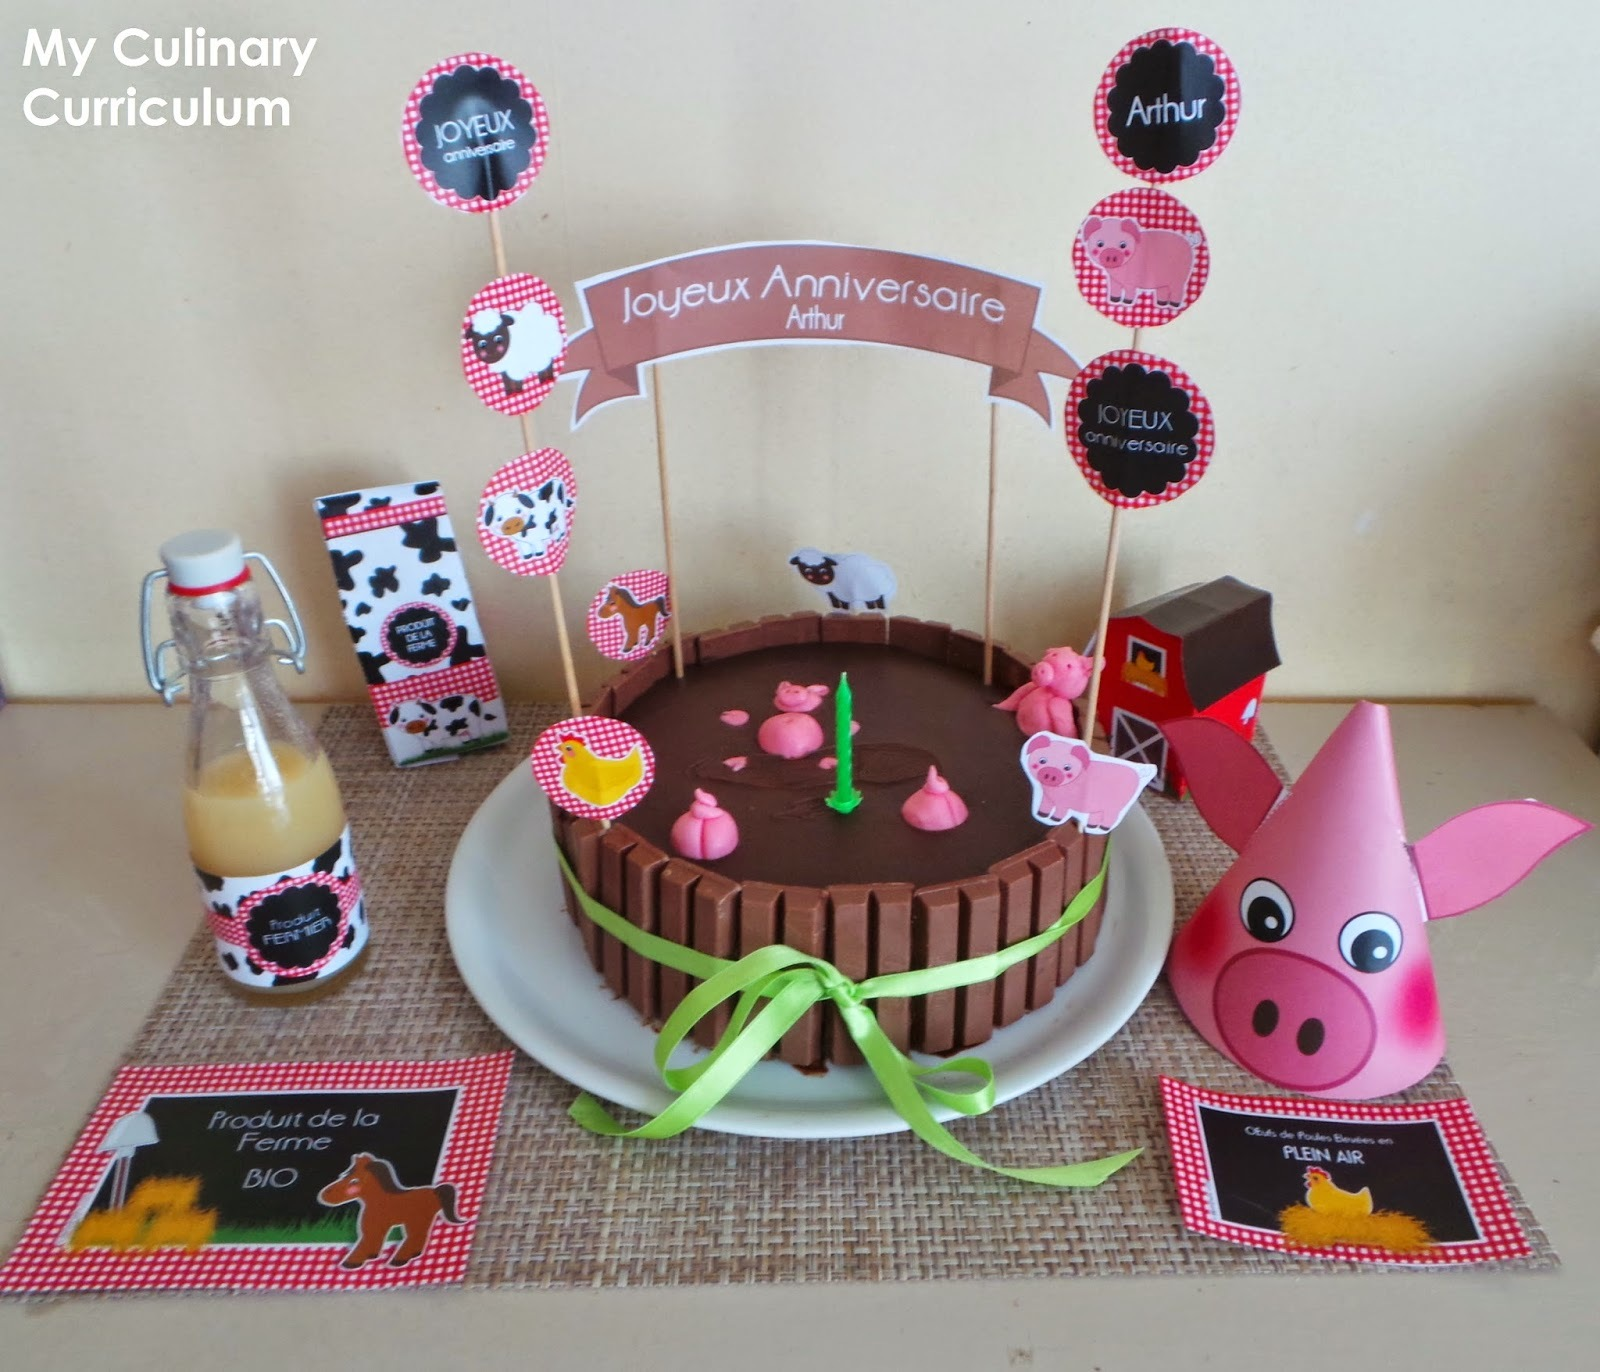 Gâteau mare aux cochons (petits cochons dans la boue) Nutella et chocolat (Cake pond pigs (little pigs in the mud) Nutella and chocolate)